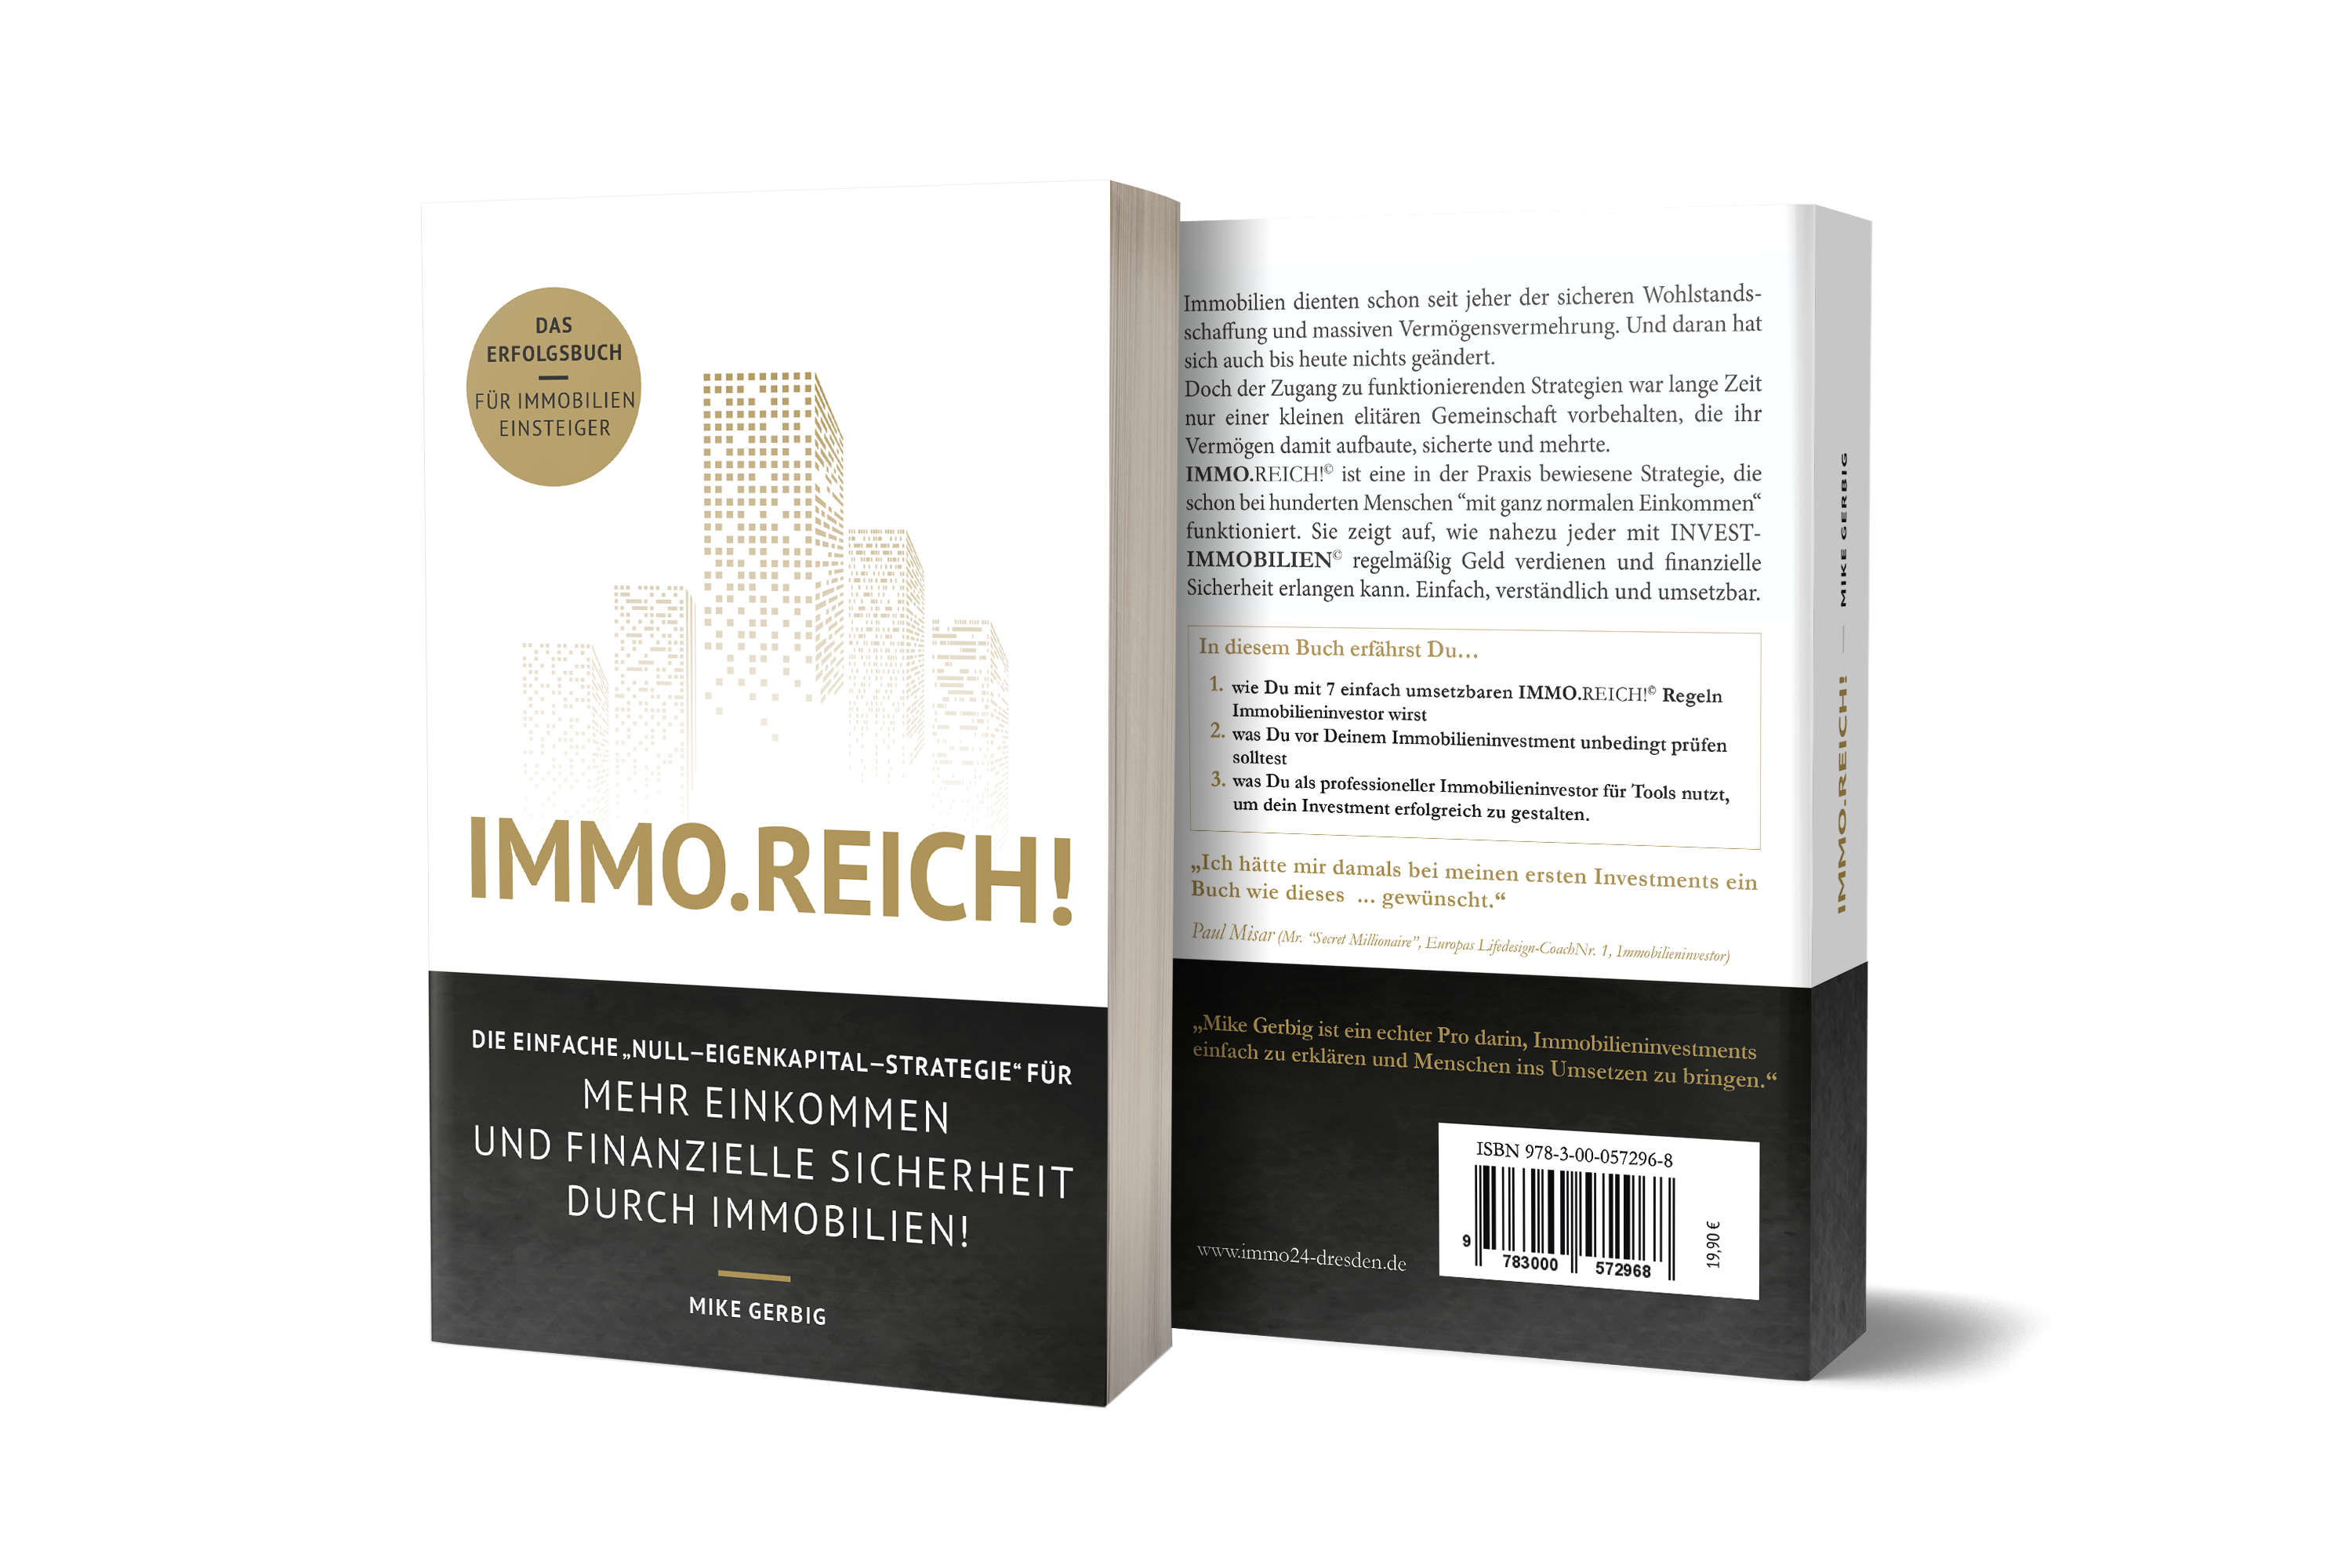 Buch-IMMO.REICH!-immo24-dresden-Mike-Gerbig